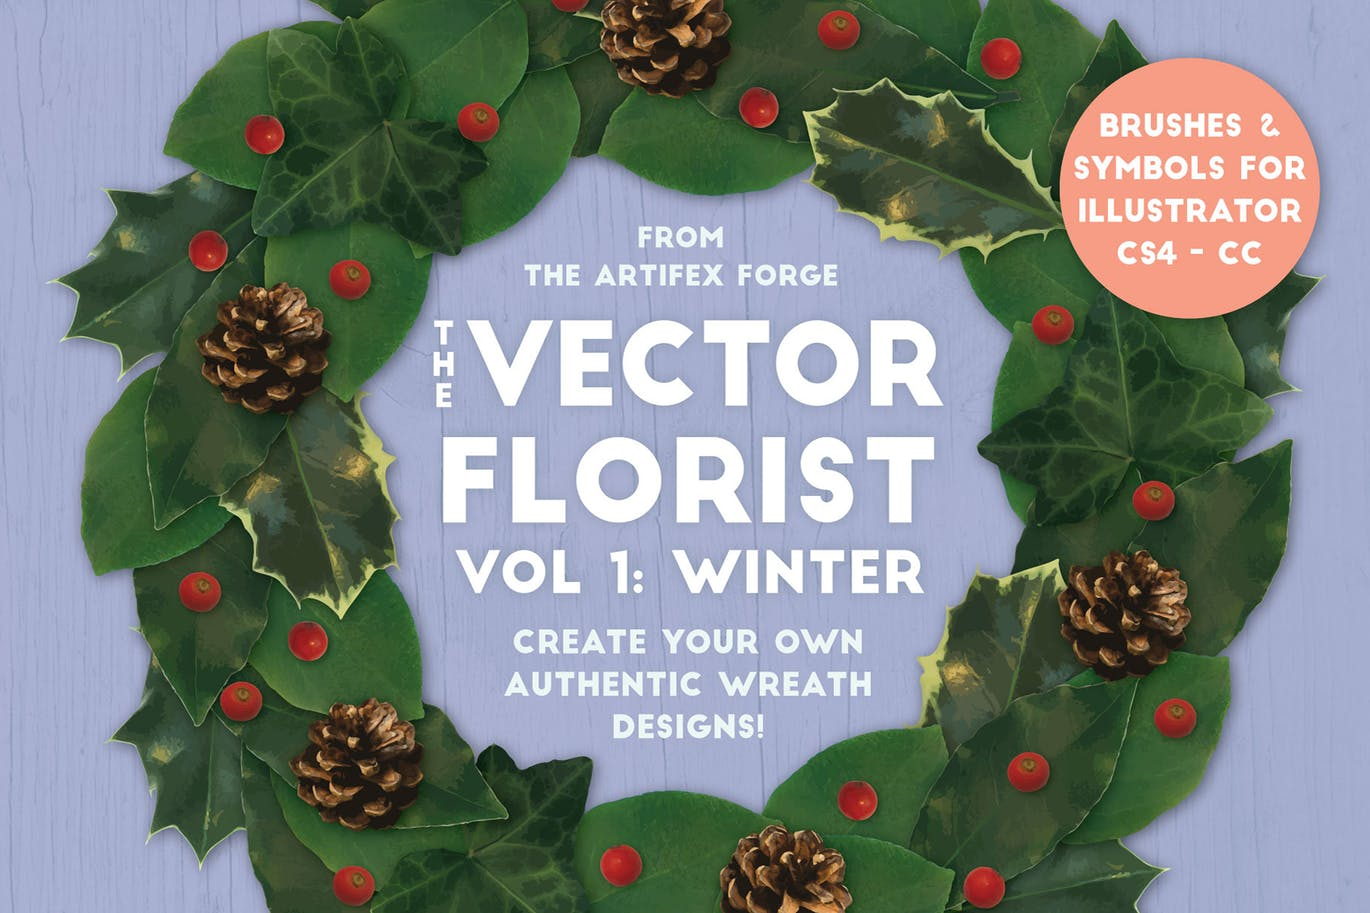 The vector florist brushes and symbols